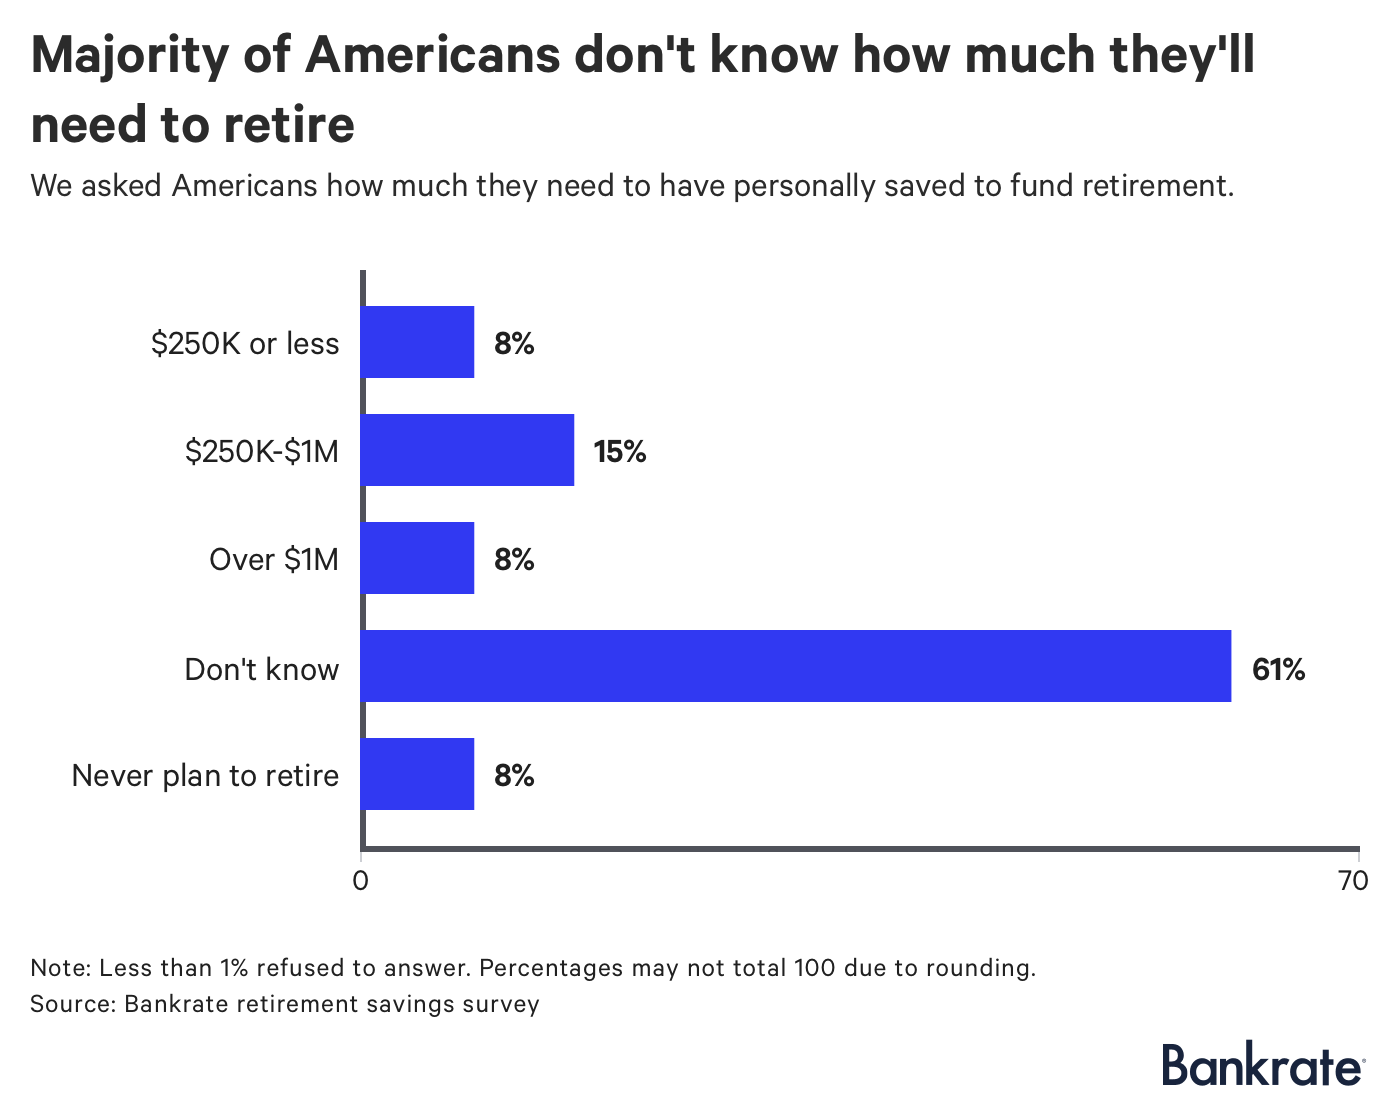 Chart: Majority of Americans don't know how much they'll need to retire